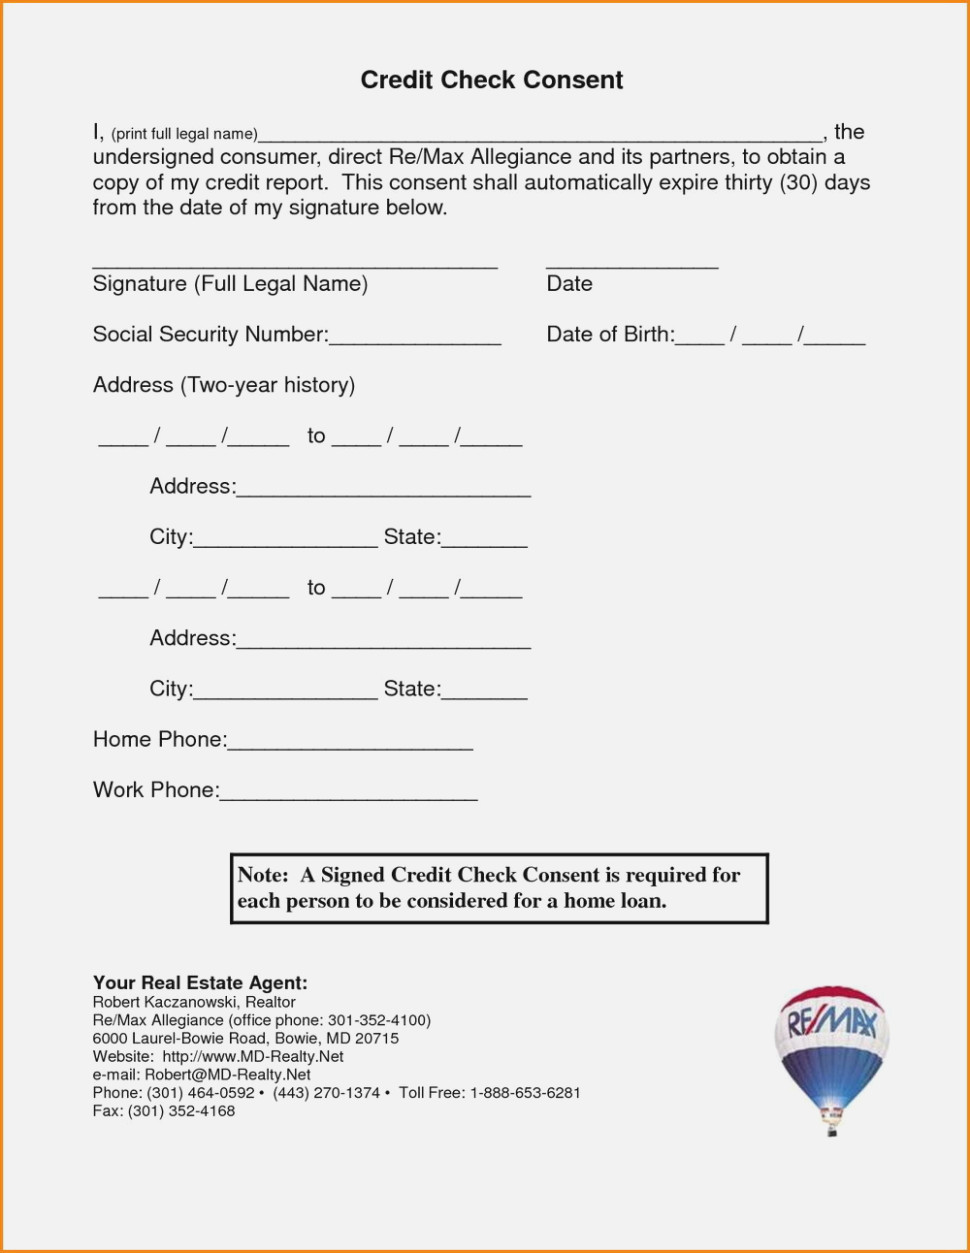 Credit Check Application Form For Landlords